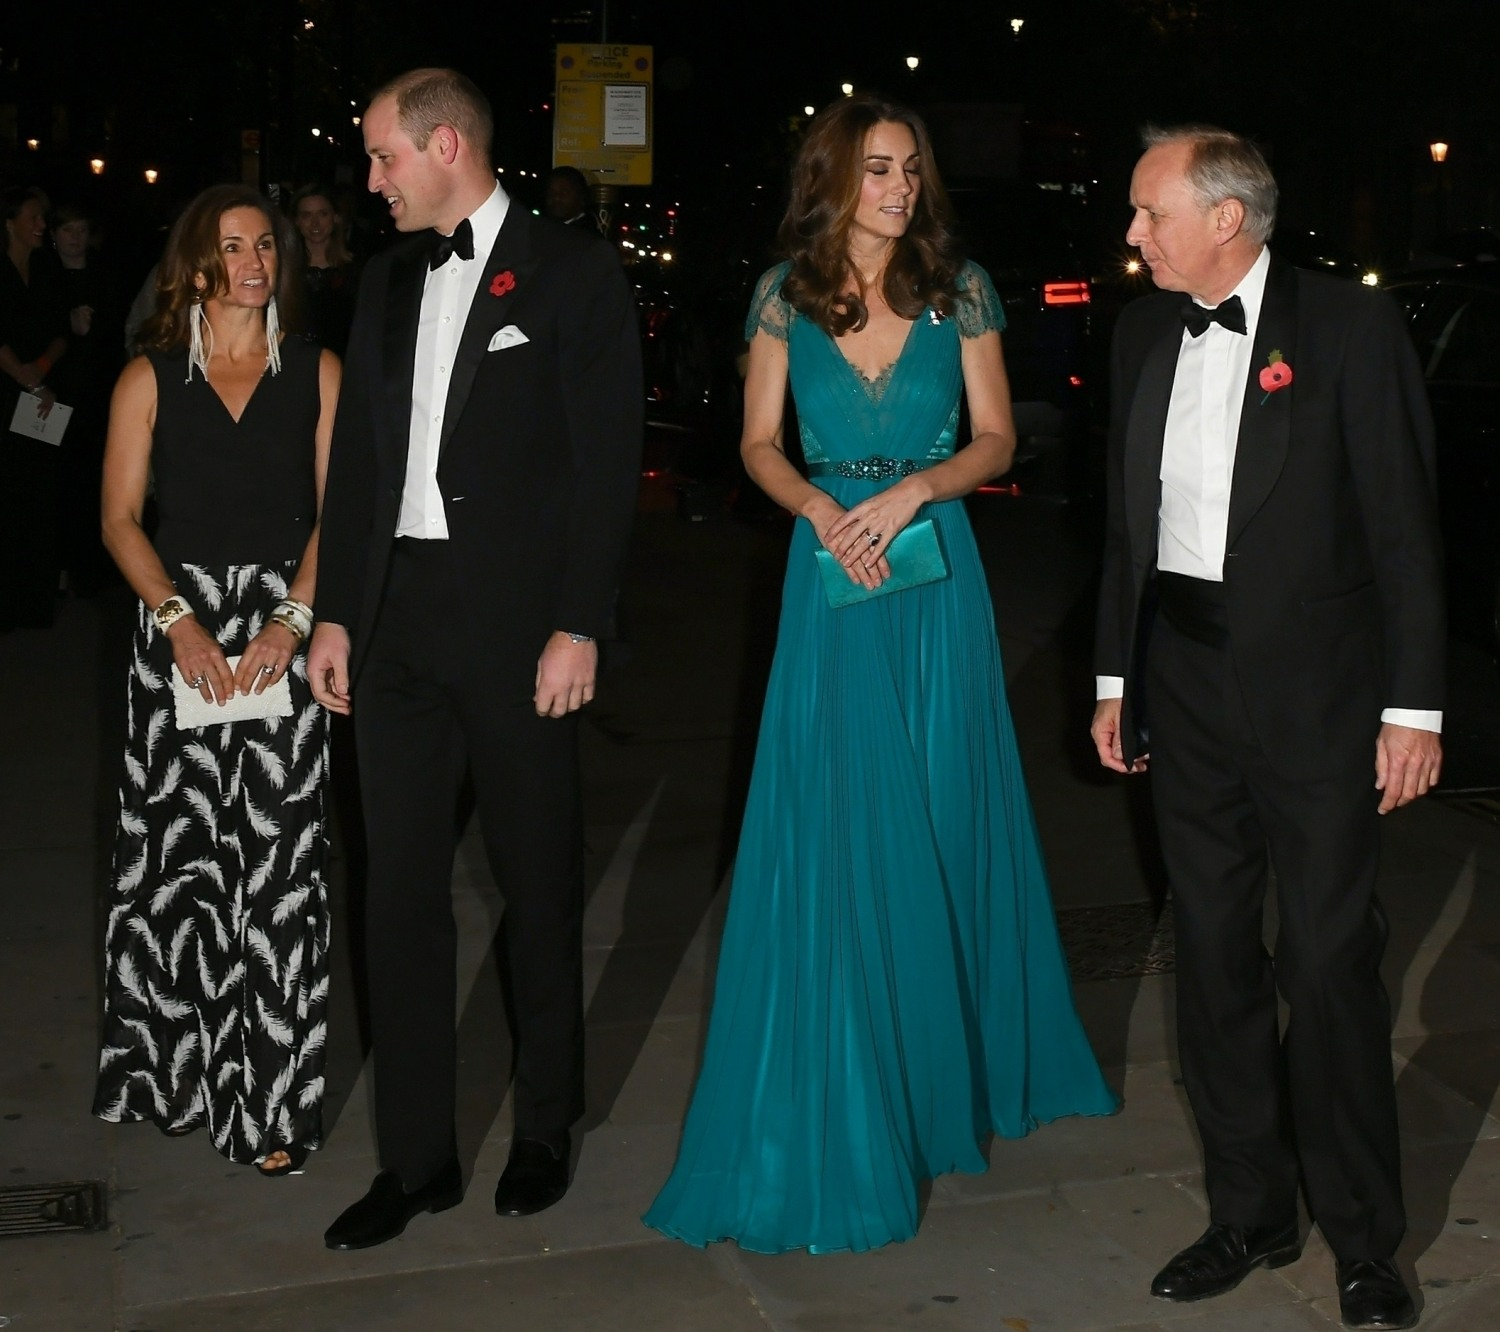 The Duke and Duchess of Cambridge are seen at the Tusk Conservation Awards